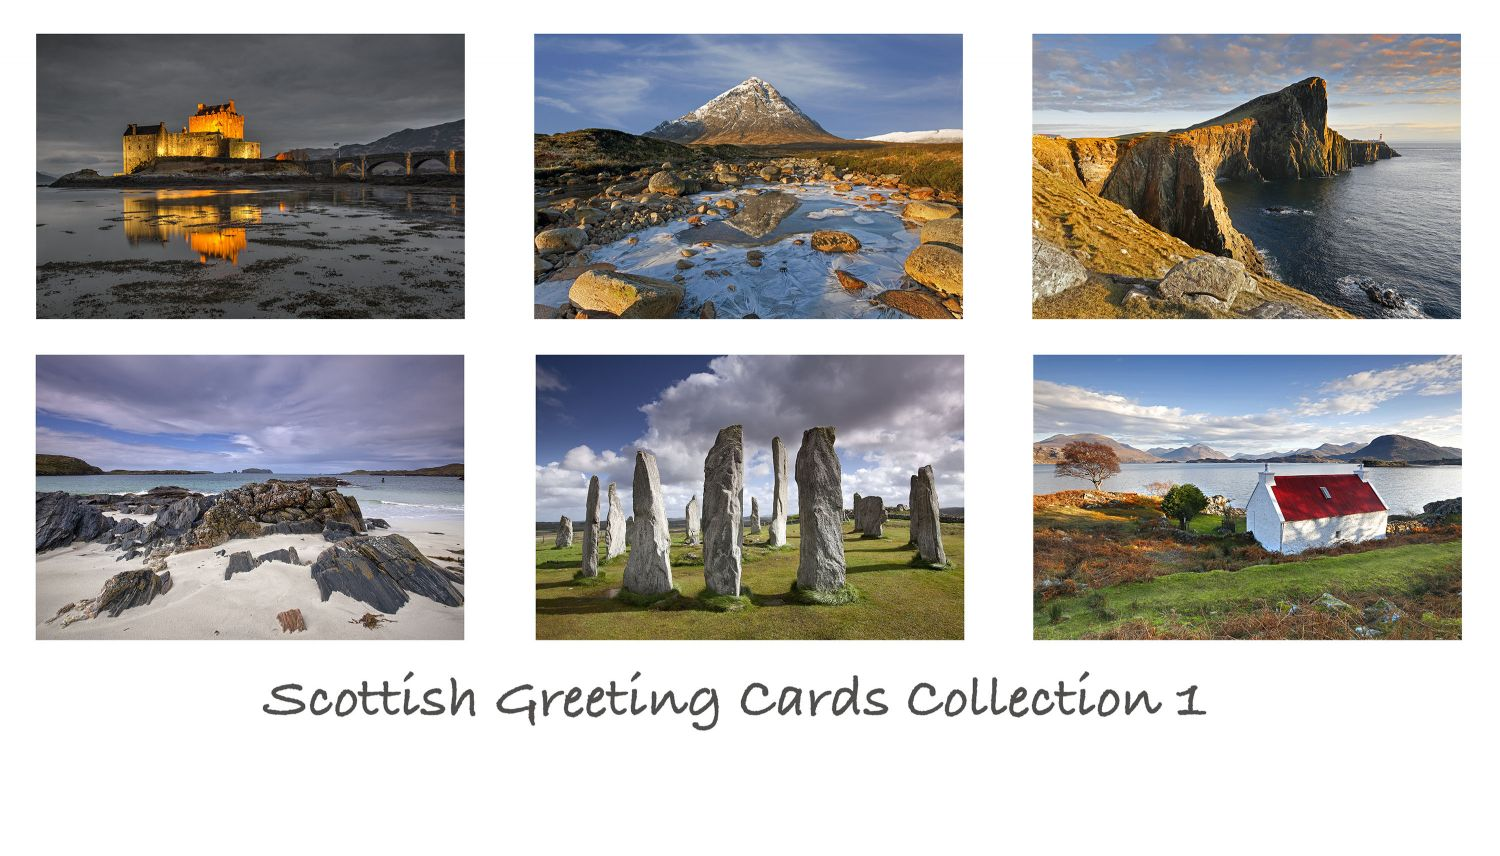 A pack of 6 Scottish Greeting cards featuring stunning images of some of Scotland's most famous locations including Glencoe, Isle of Skye and Isle of Lewis